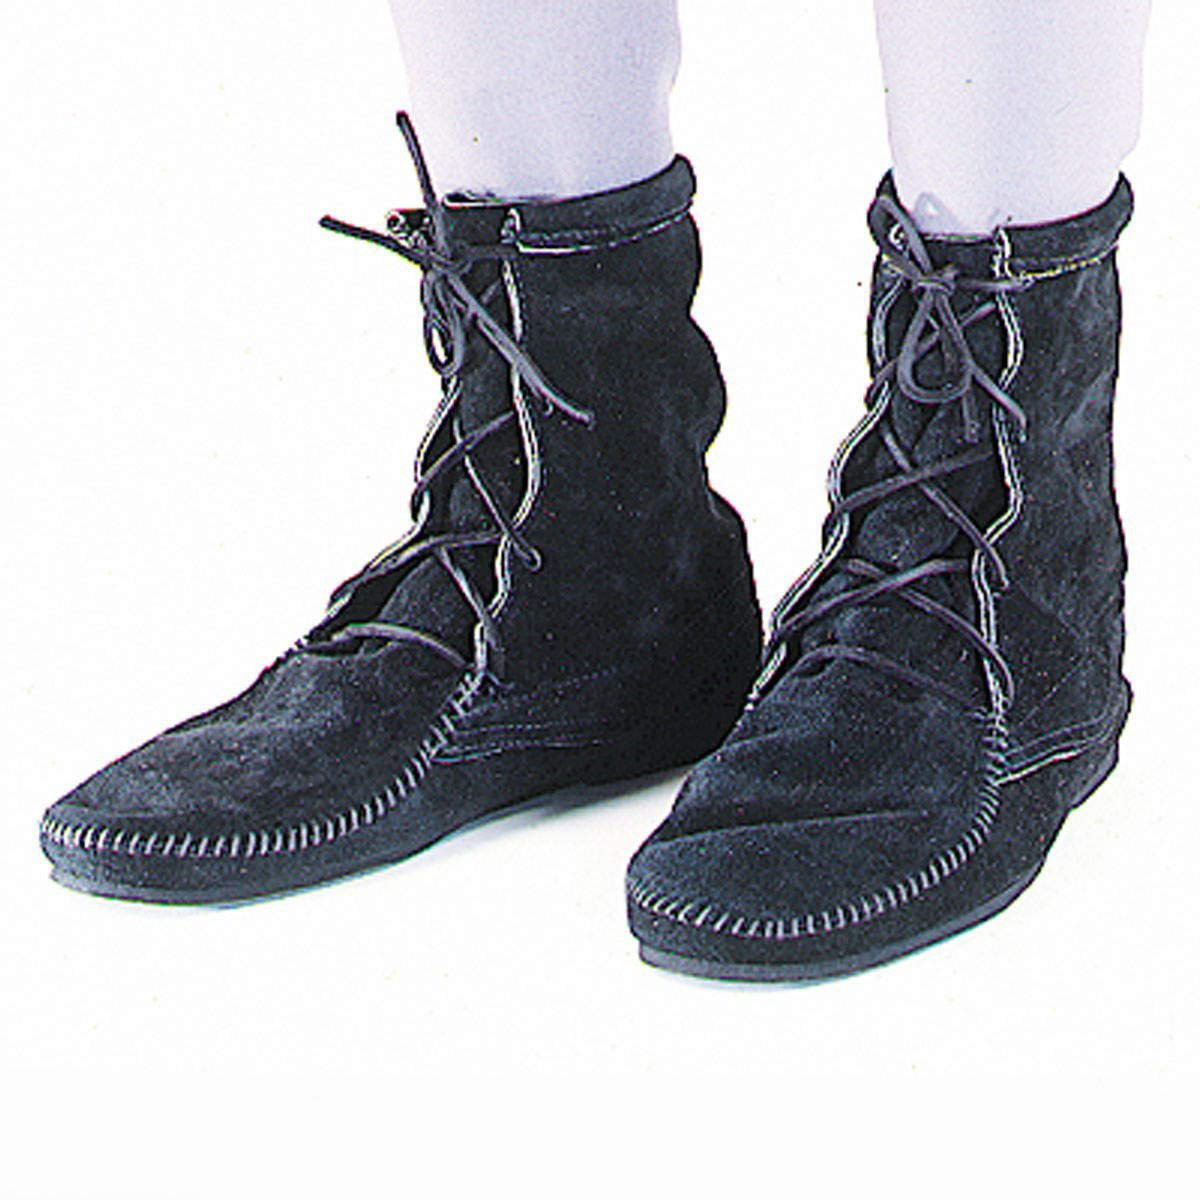 Low Boots without Fringe - Black